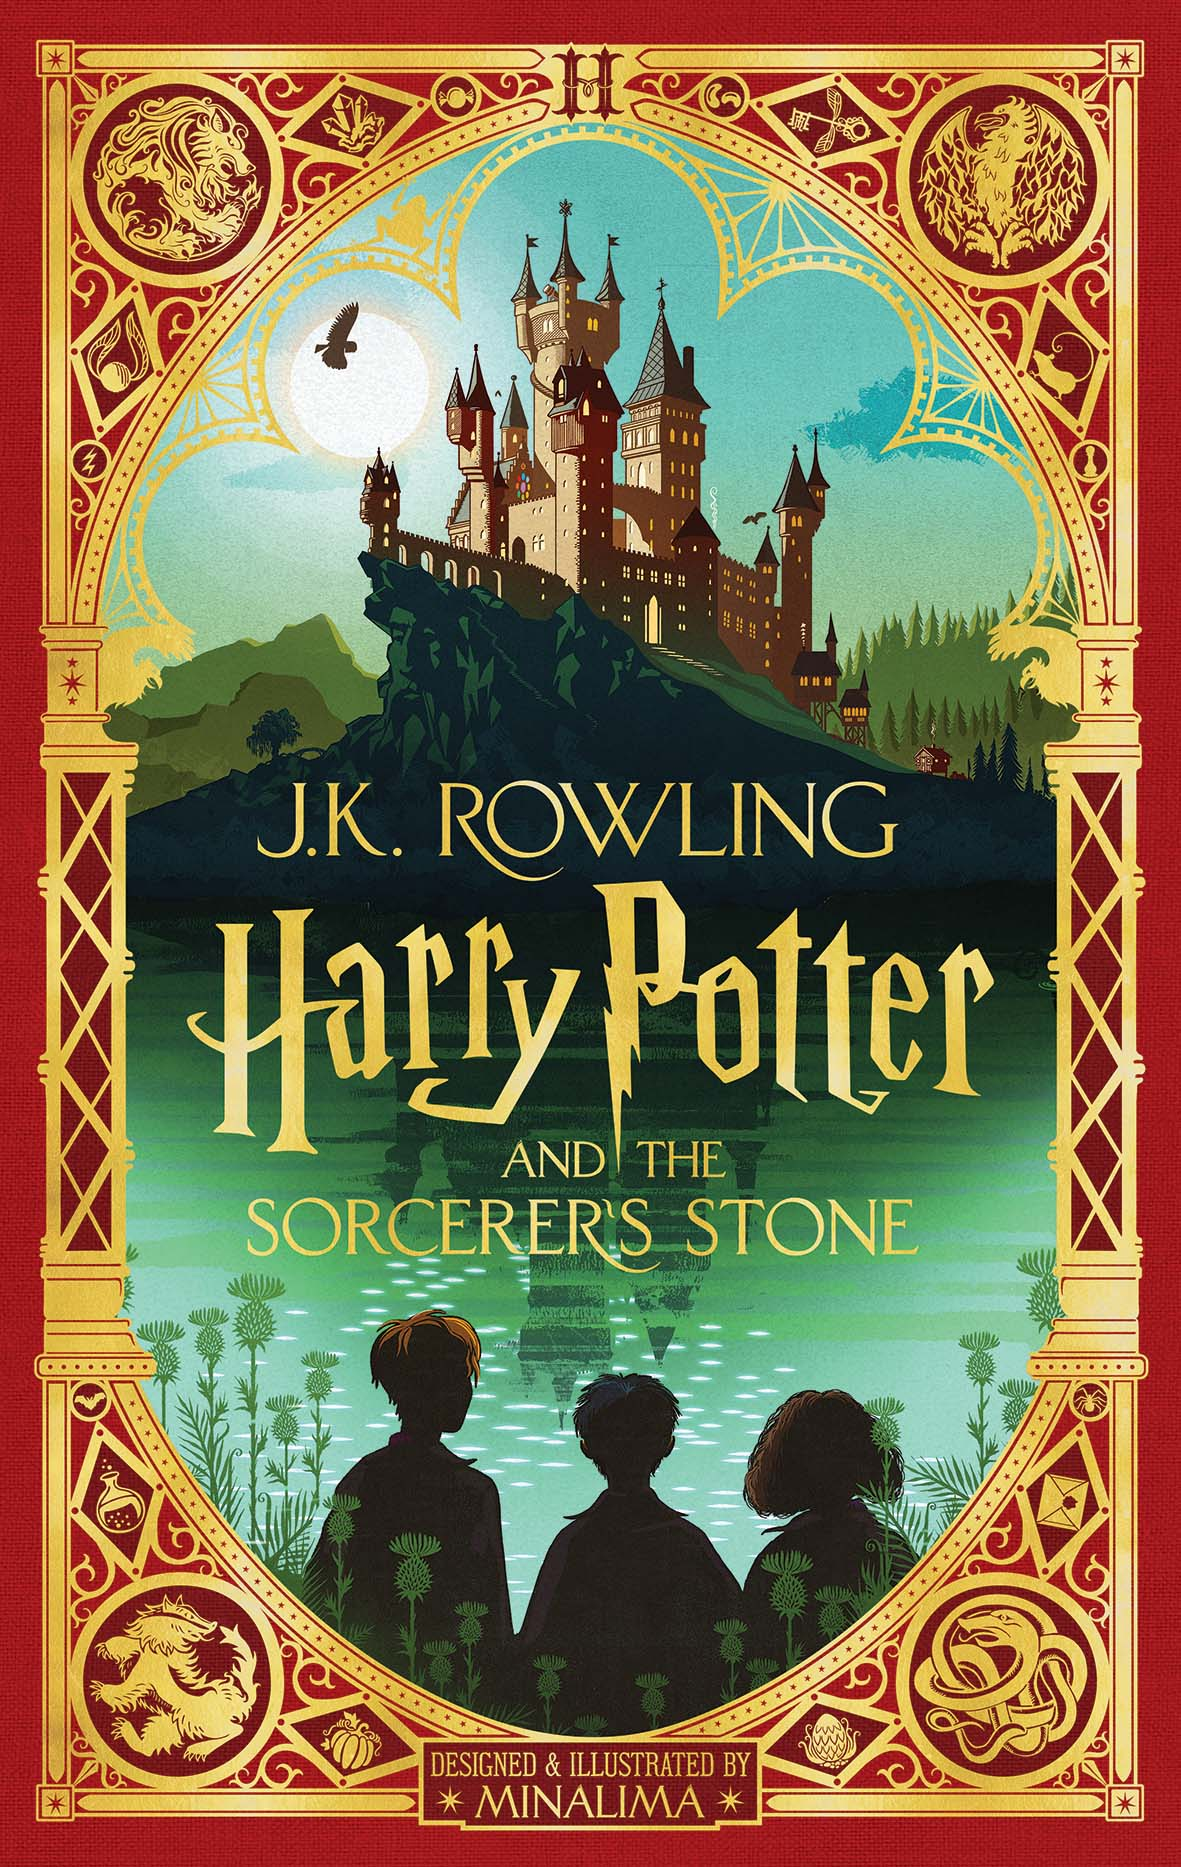 Harry Potter and the Sorcerer's Stone designed by Minalima